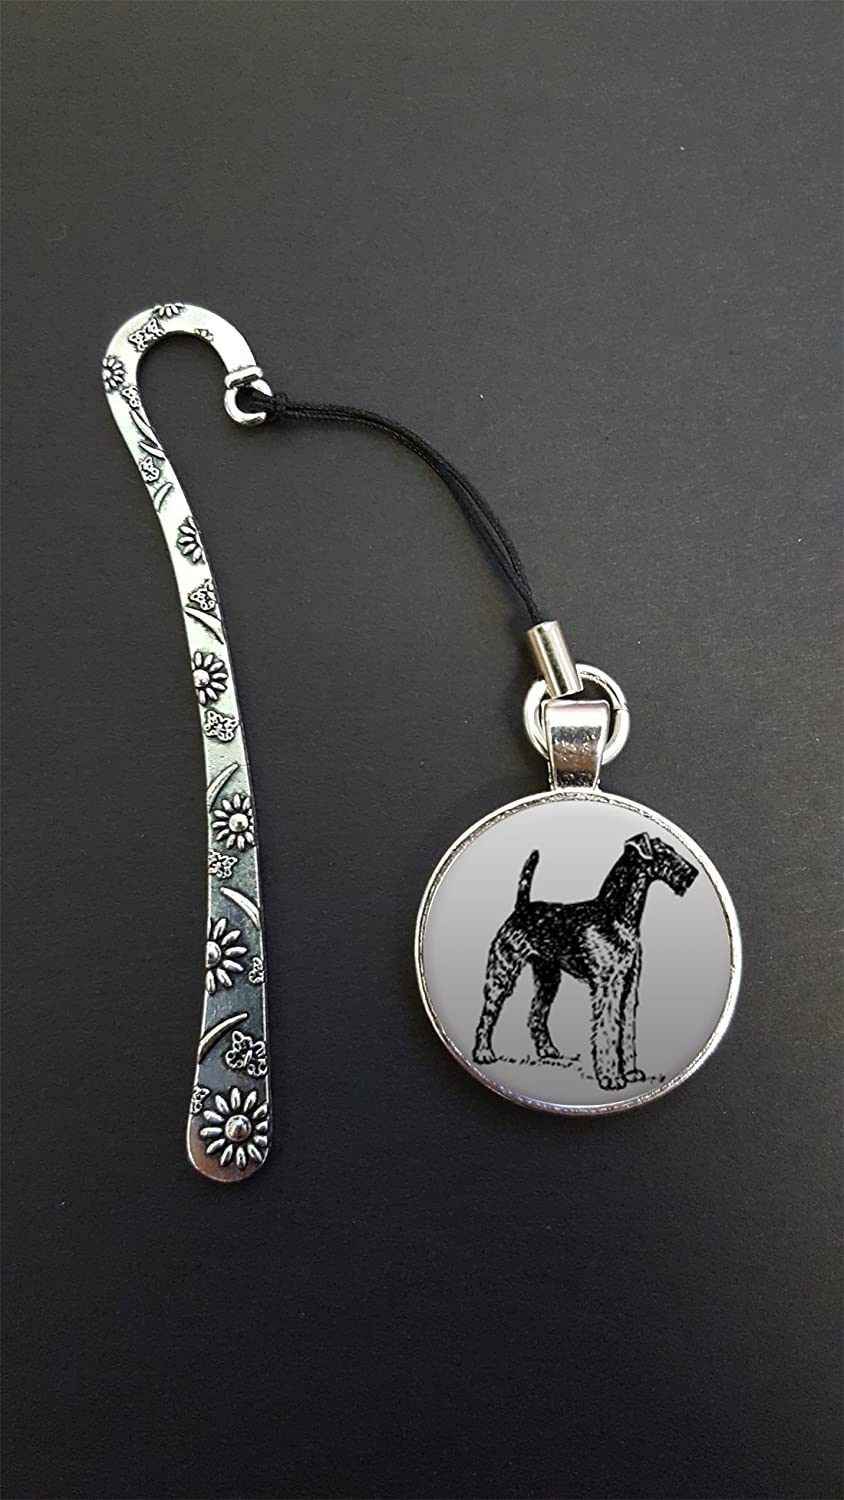 Airedale Terrier Pendant On a Metal Design Bookmark Ideal Birthday Gift N609